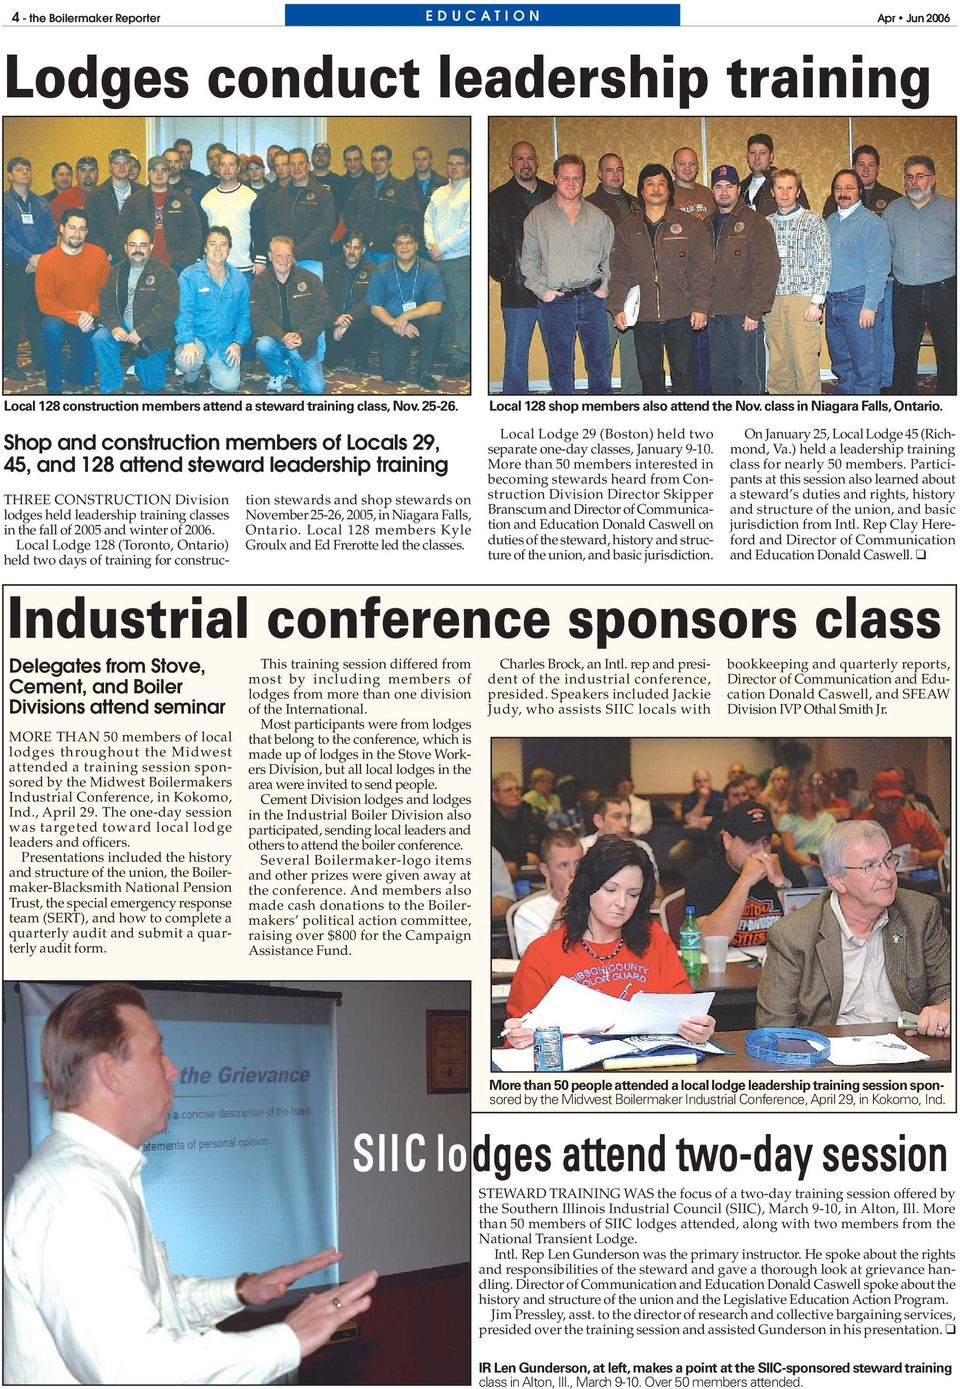 Shop and construction members of Locals 29, 45, and 128 attend steward leadership training Delegates from Stove, Cement, and Boiler Divisions attend seminar MORE THAN 50 members of local lodges